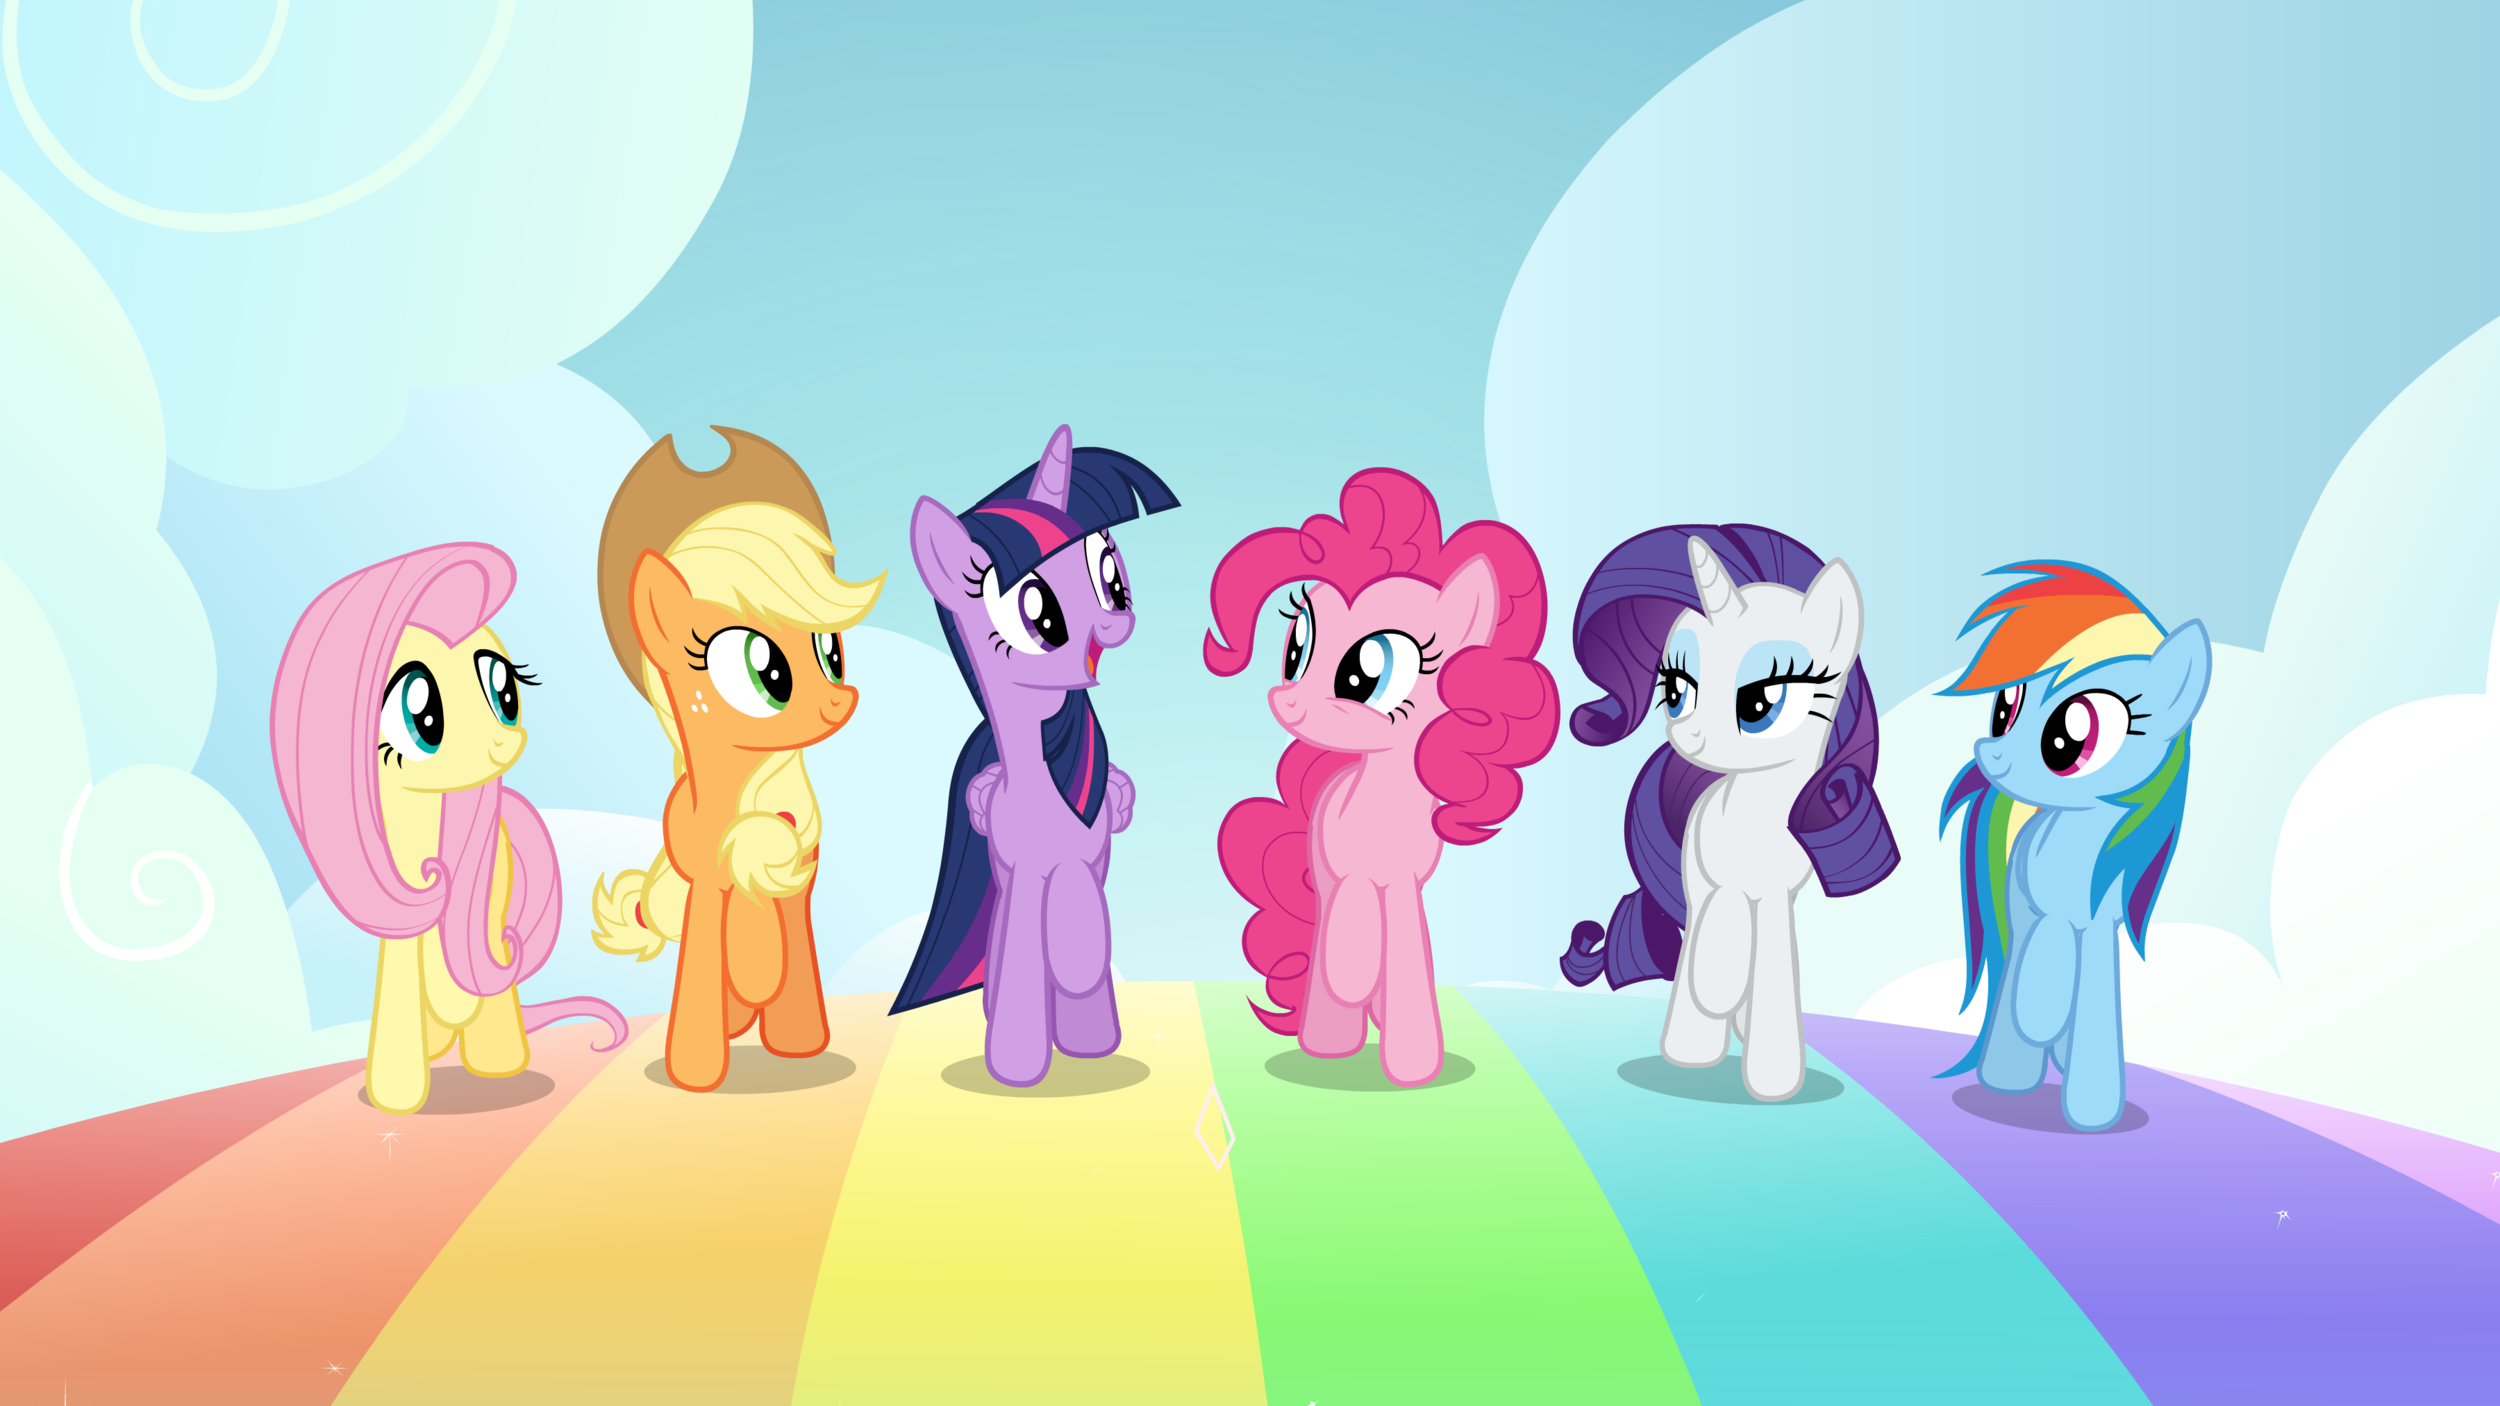 my-little-pony-friendship-is-magic-season-7-image-5.png